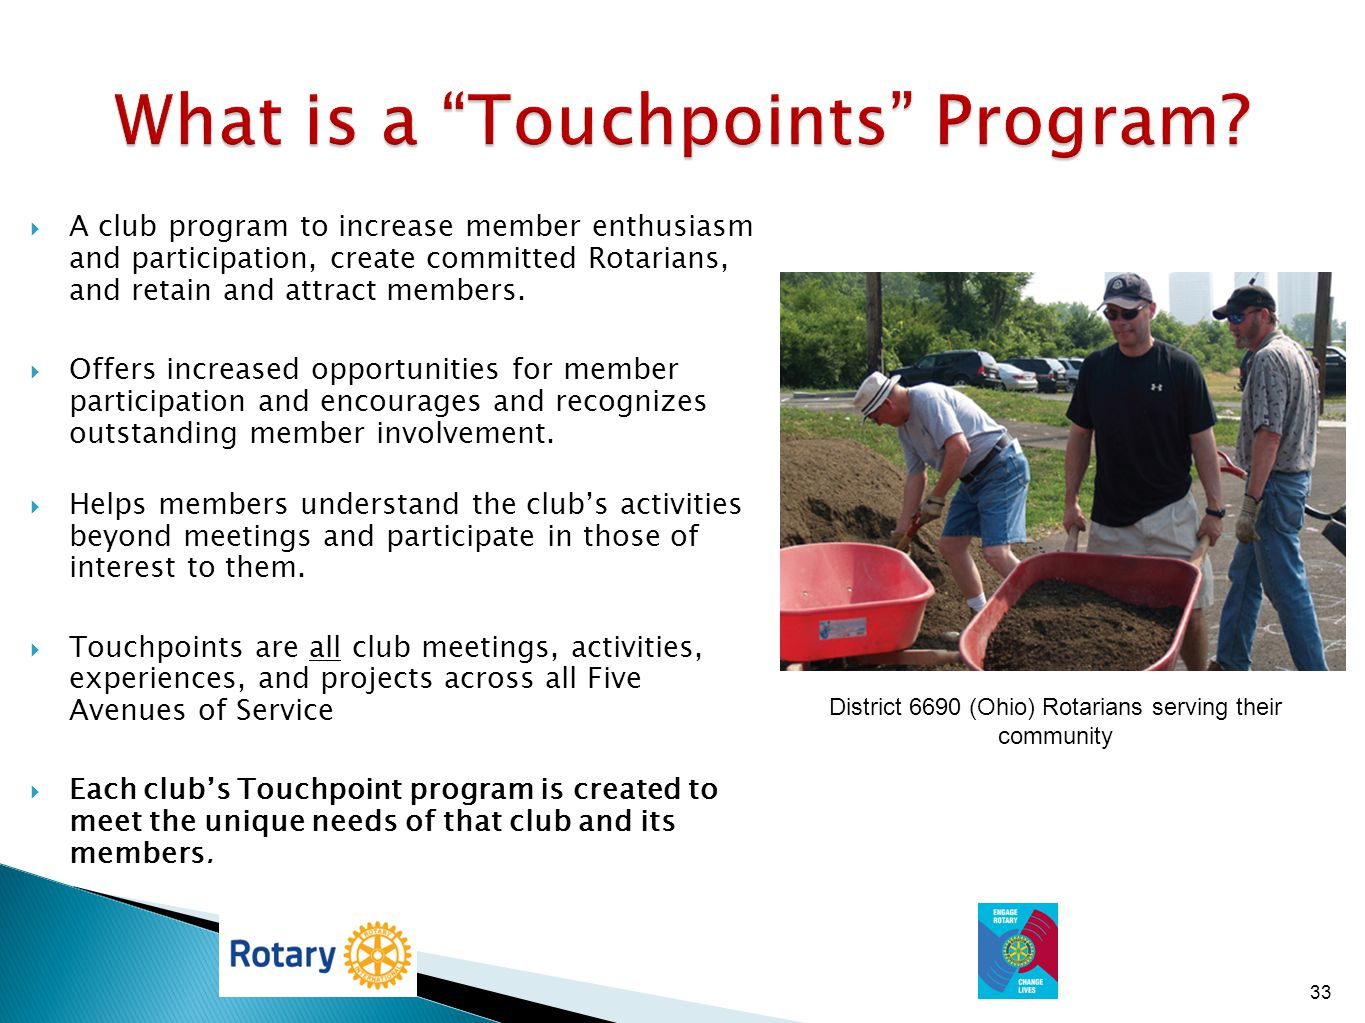 What is a Touchpoints Program